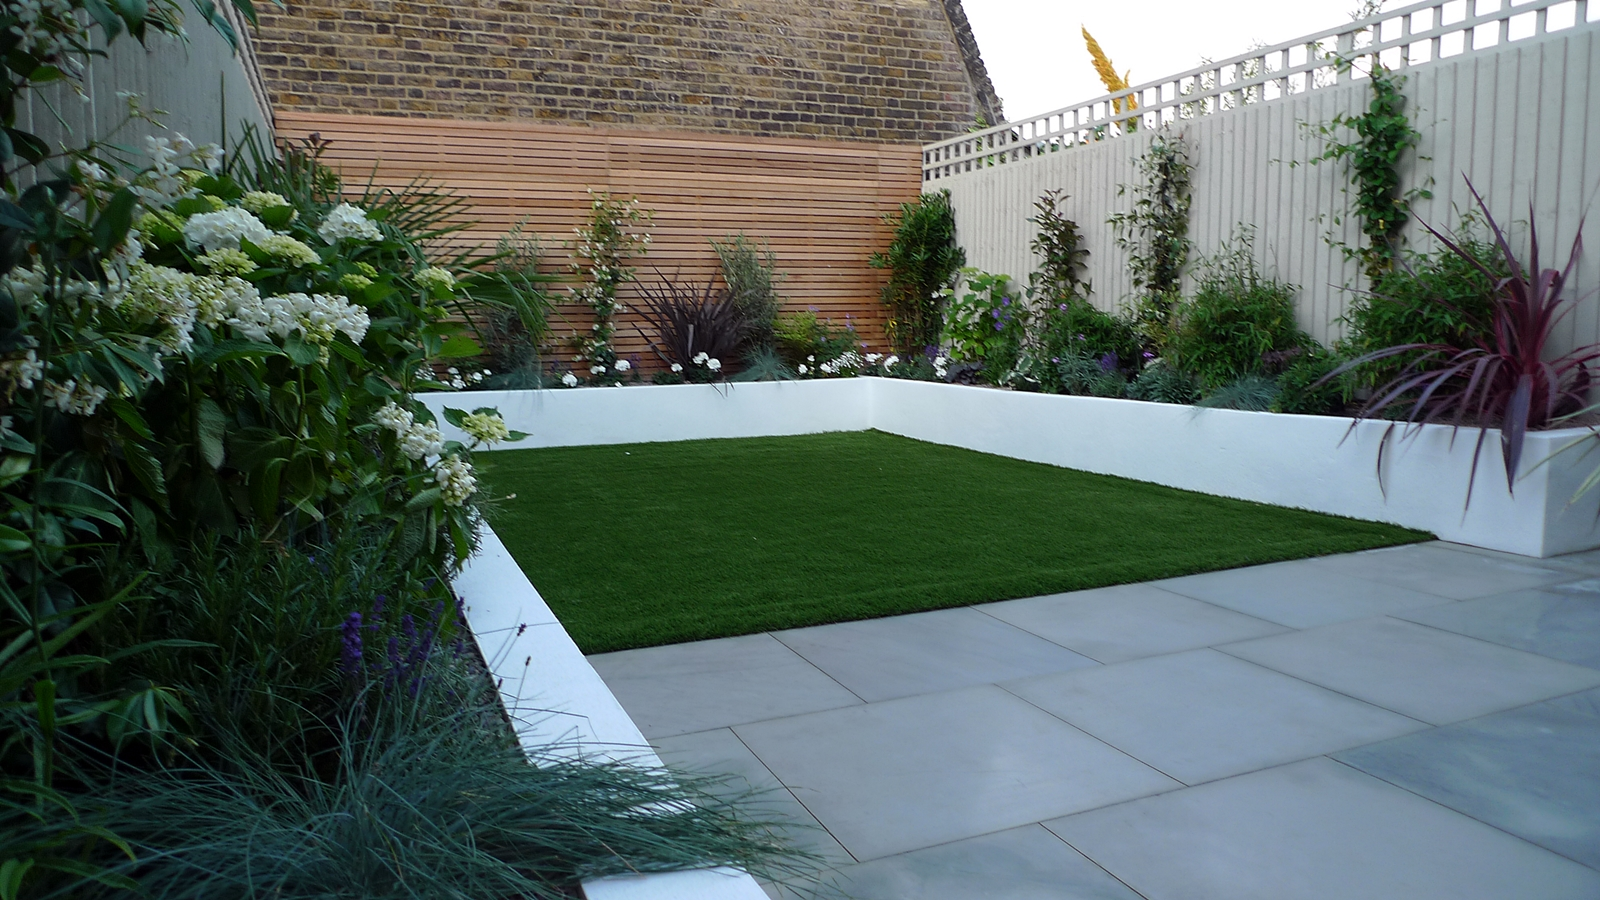 Paving Stone Garden Designs Of Sawn Grey Sandstone Paving Raised Rendered Beds Hardwood